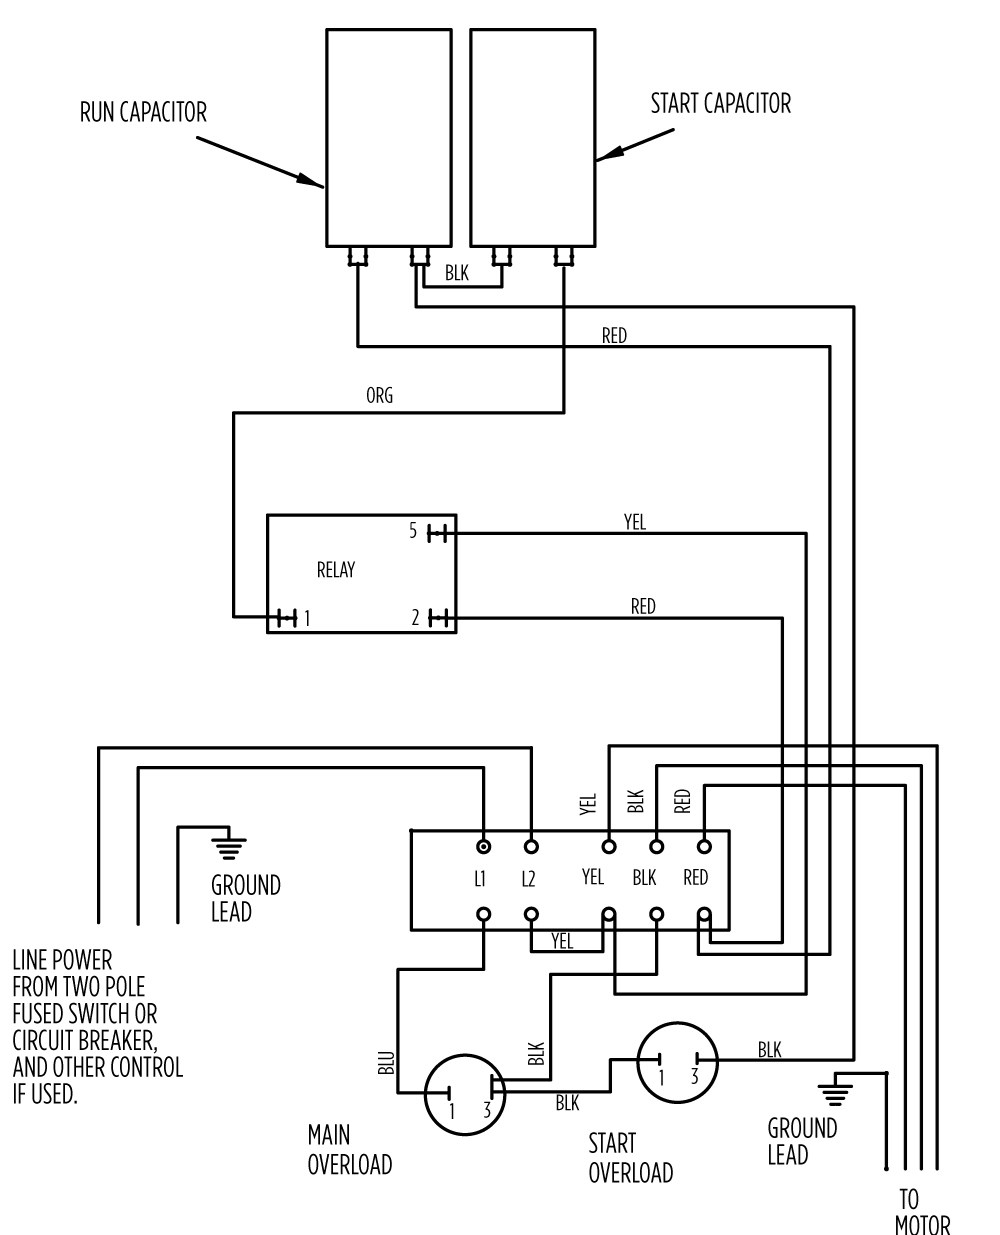 2 hp standard 282 301 8110_aim gallery?format=jpg&quality=80 aim manual page 55 single phase motors and controls motor franklin electric control box wiring diagram at honlapkeszites.co